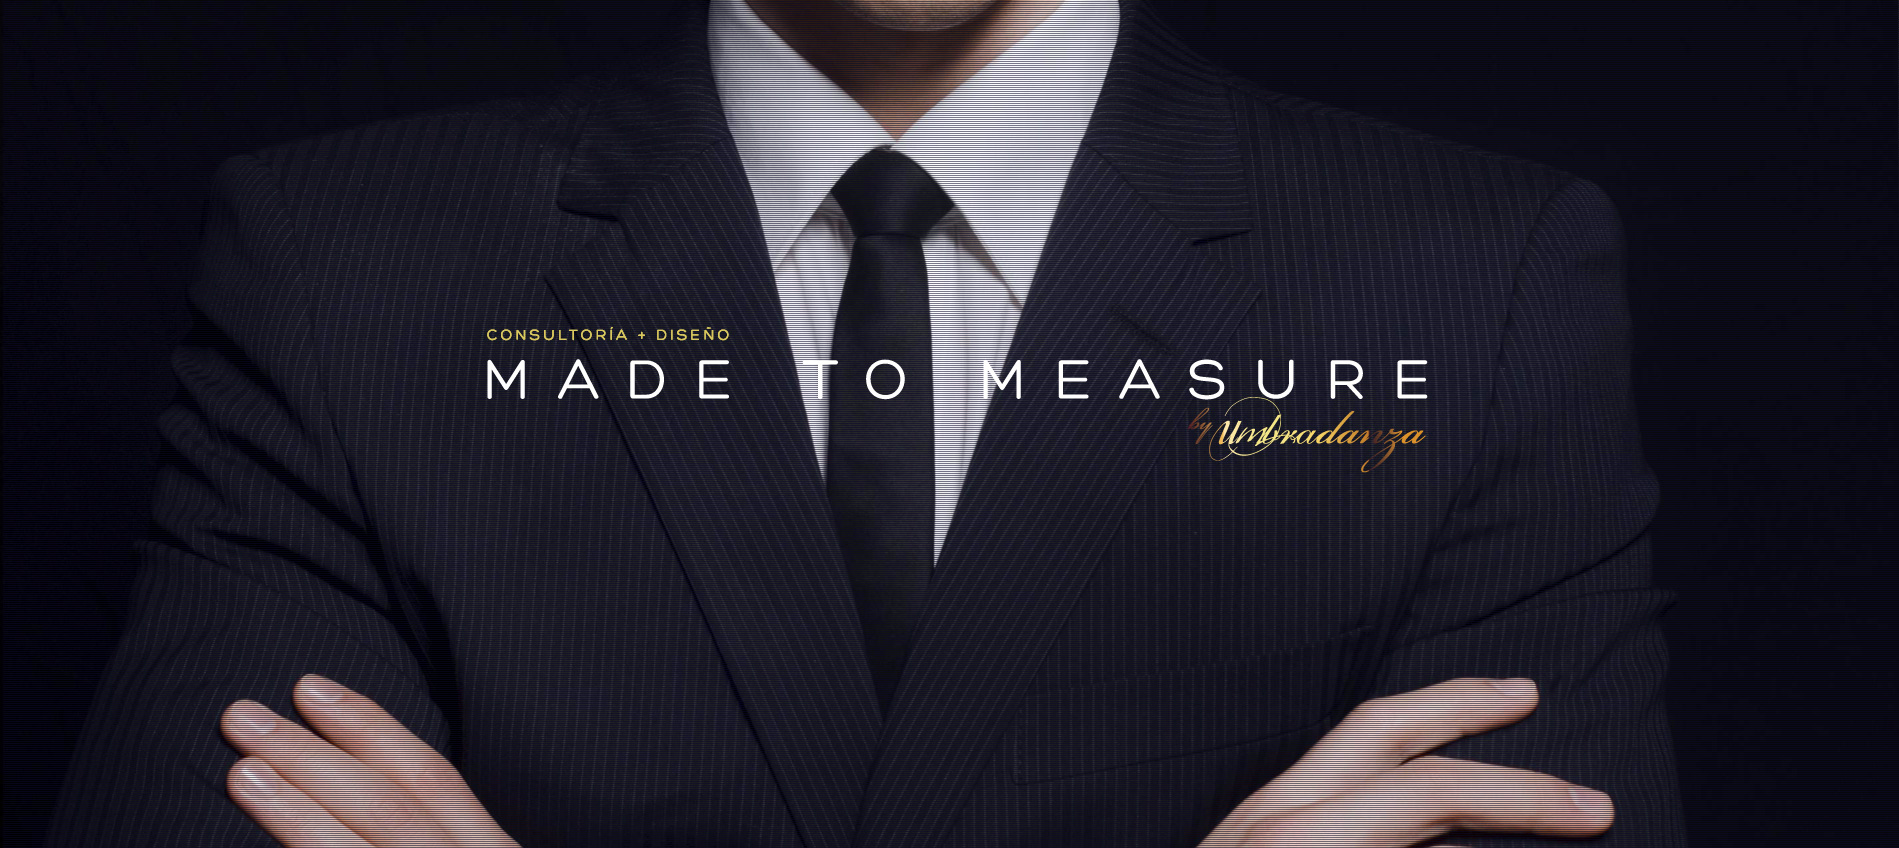 Consultoria de diseño corporativo. Made to Measure.